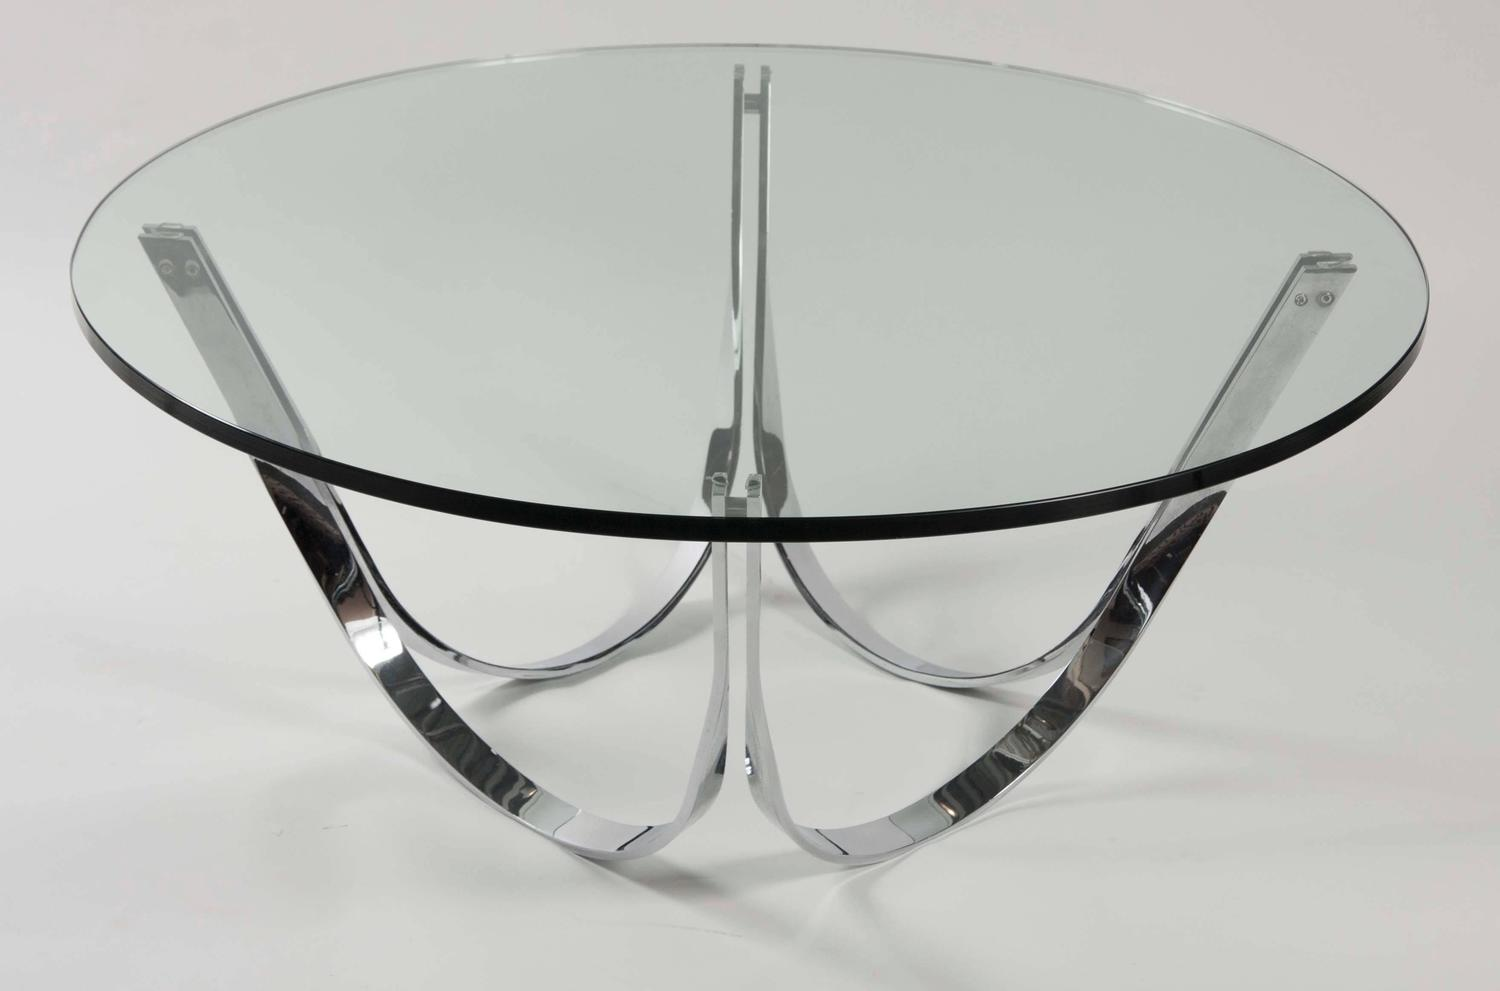 Round glass coffee table by roger sprunger for dunbar for for Round glass coffee tables for sale